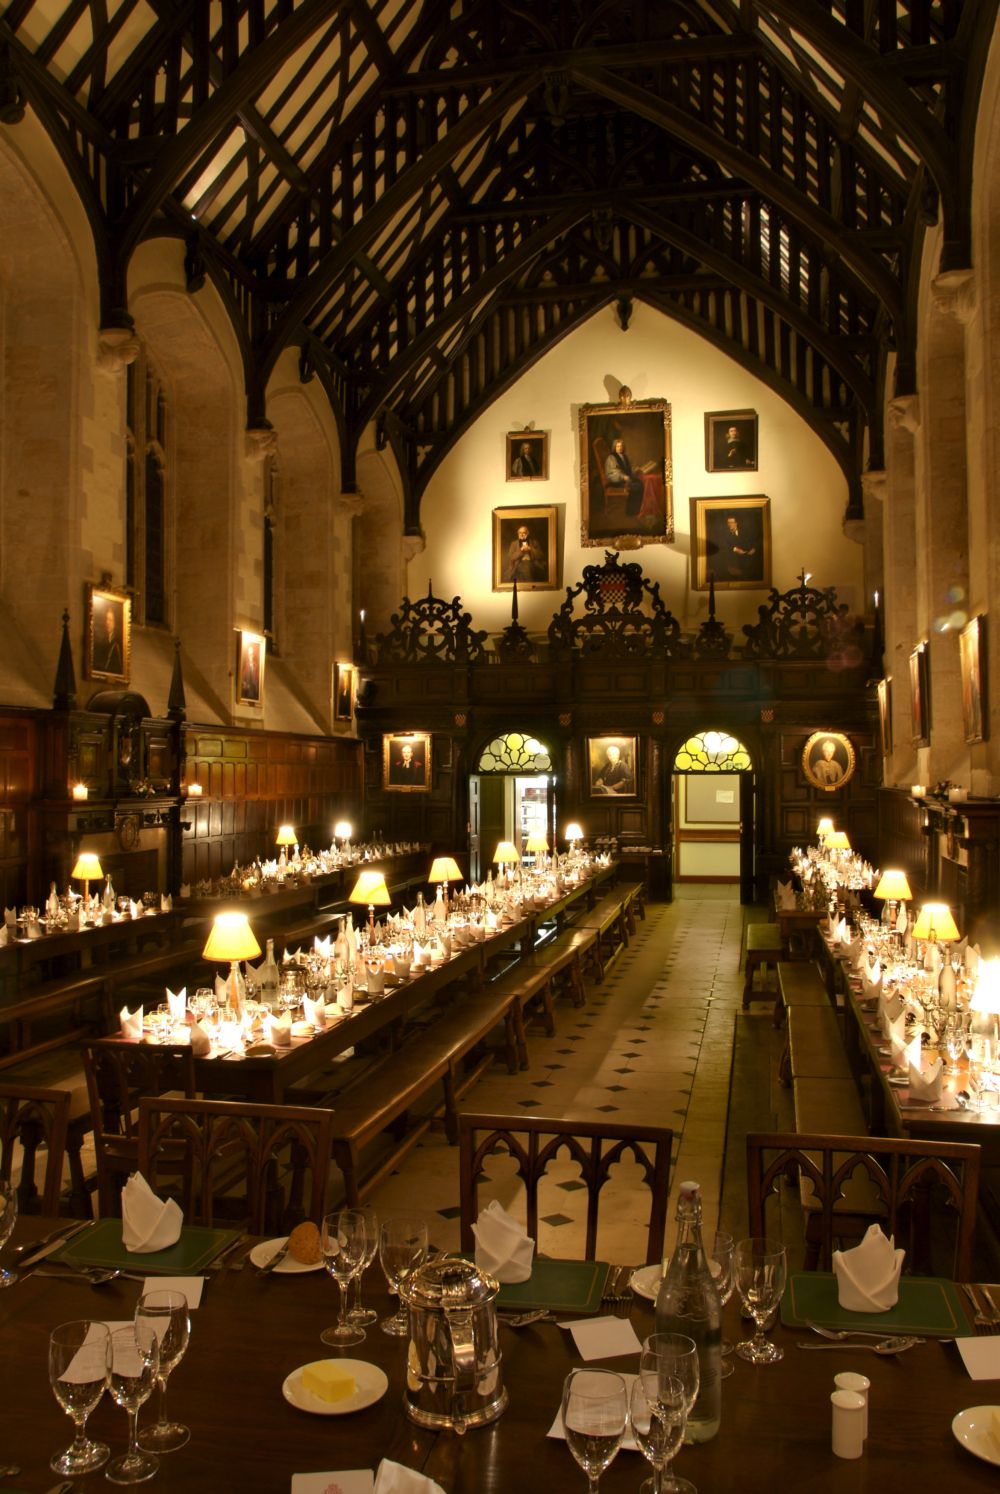 Exeter college oxford guest b b book now for U of t dining hall hours